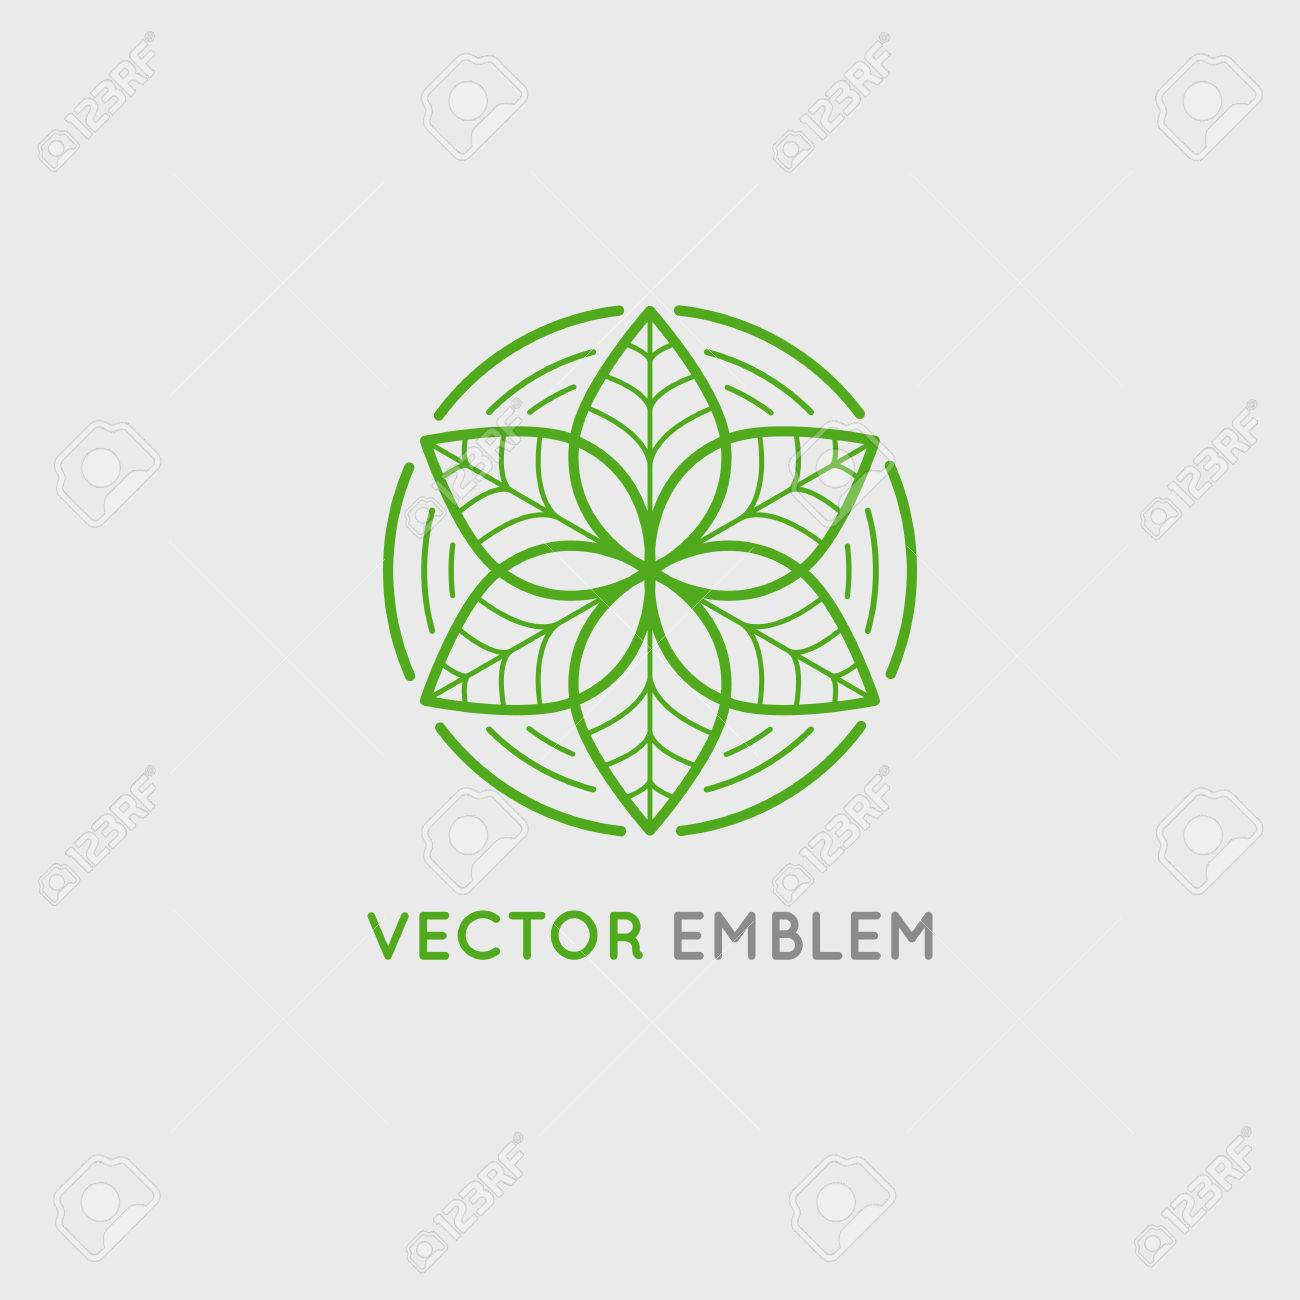 Vector design template and emblem made with leaves and flowers - luxury beauty spa concept - badge for yoga studios, holistic medicine centers, natural and organic food products and packaging - 64877748